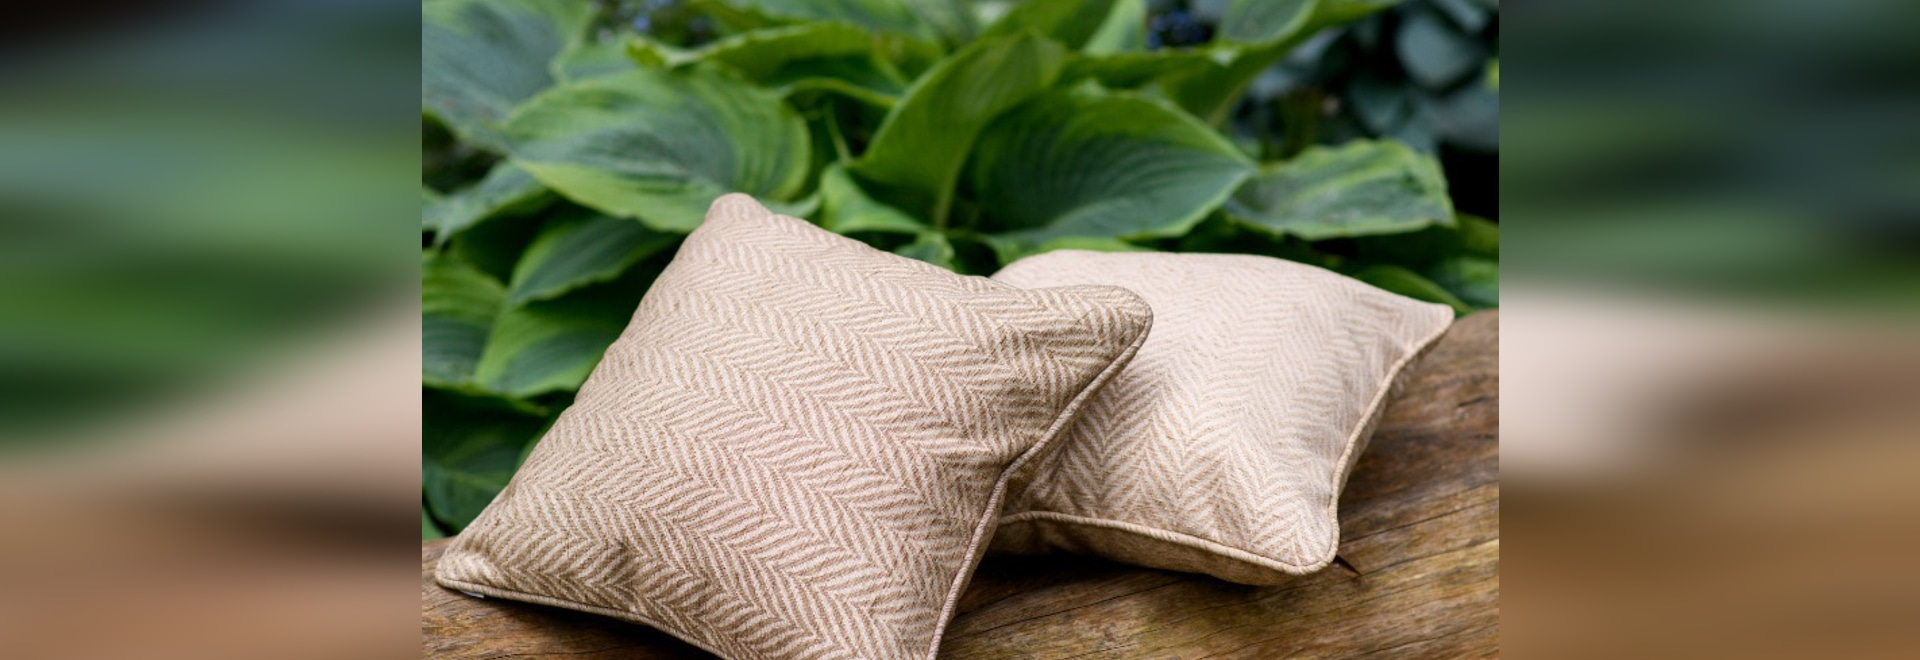 New outdoor fabric collection launched by Extex